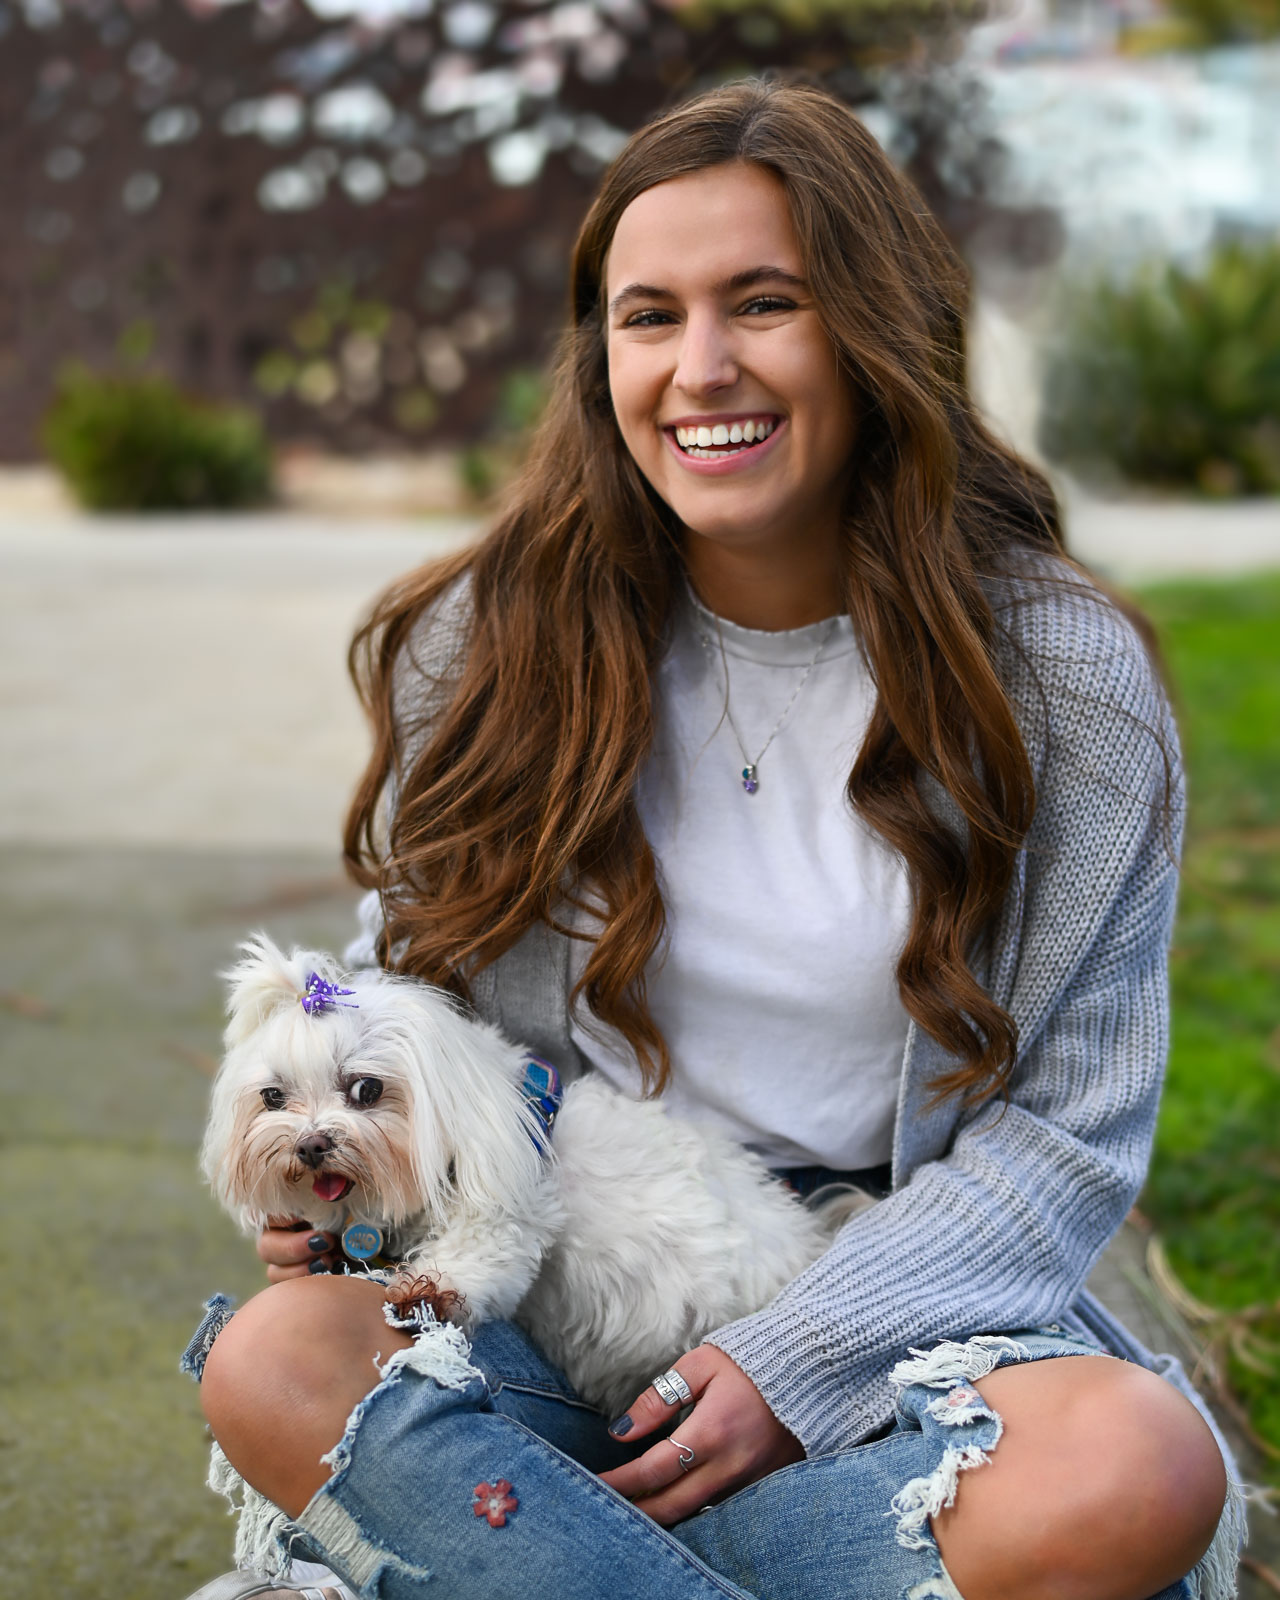 Senior photo of a teen girl and her dog